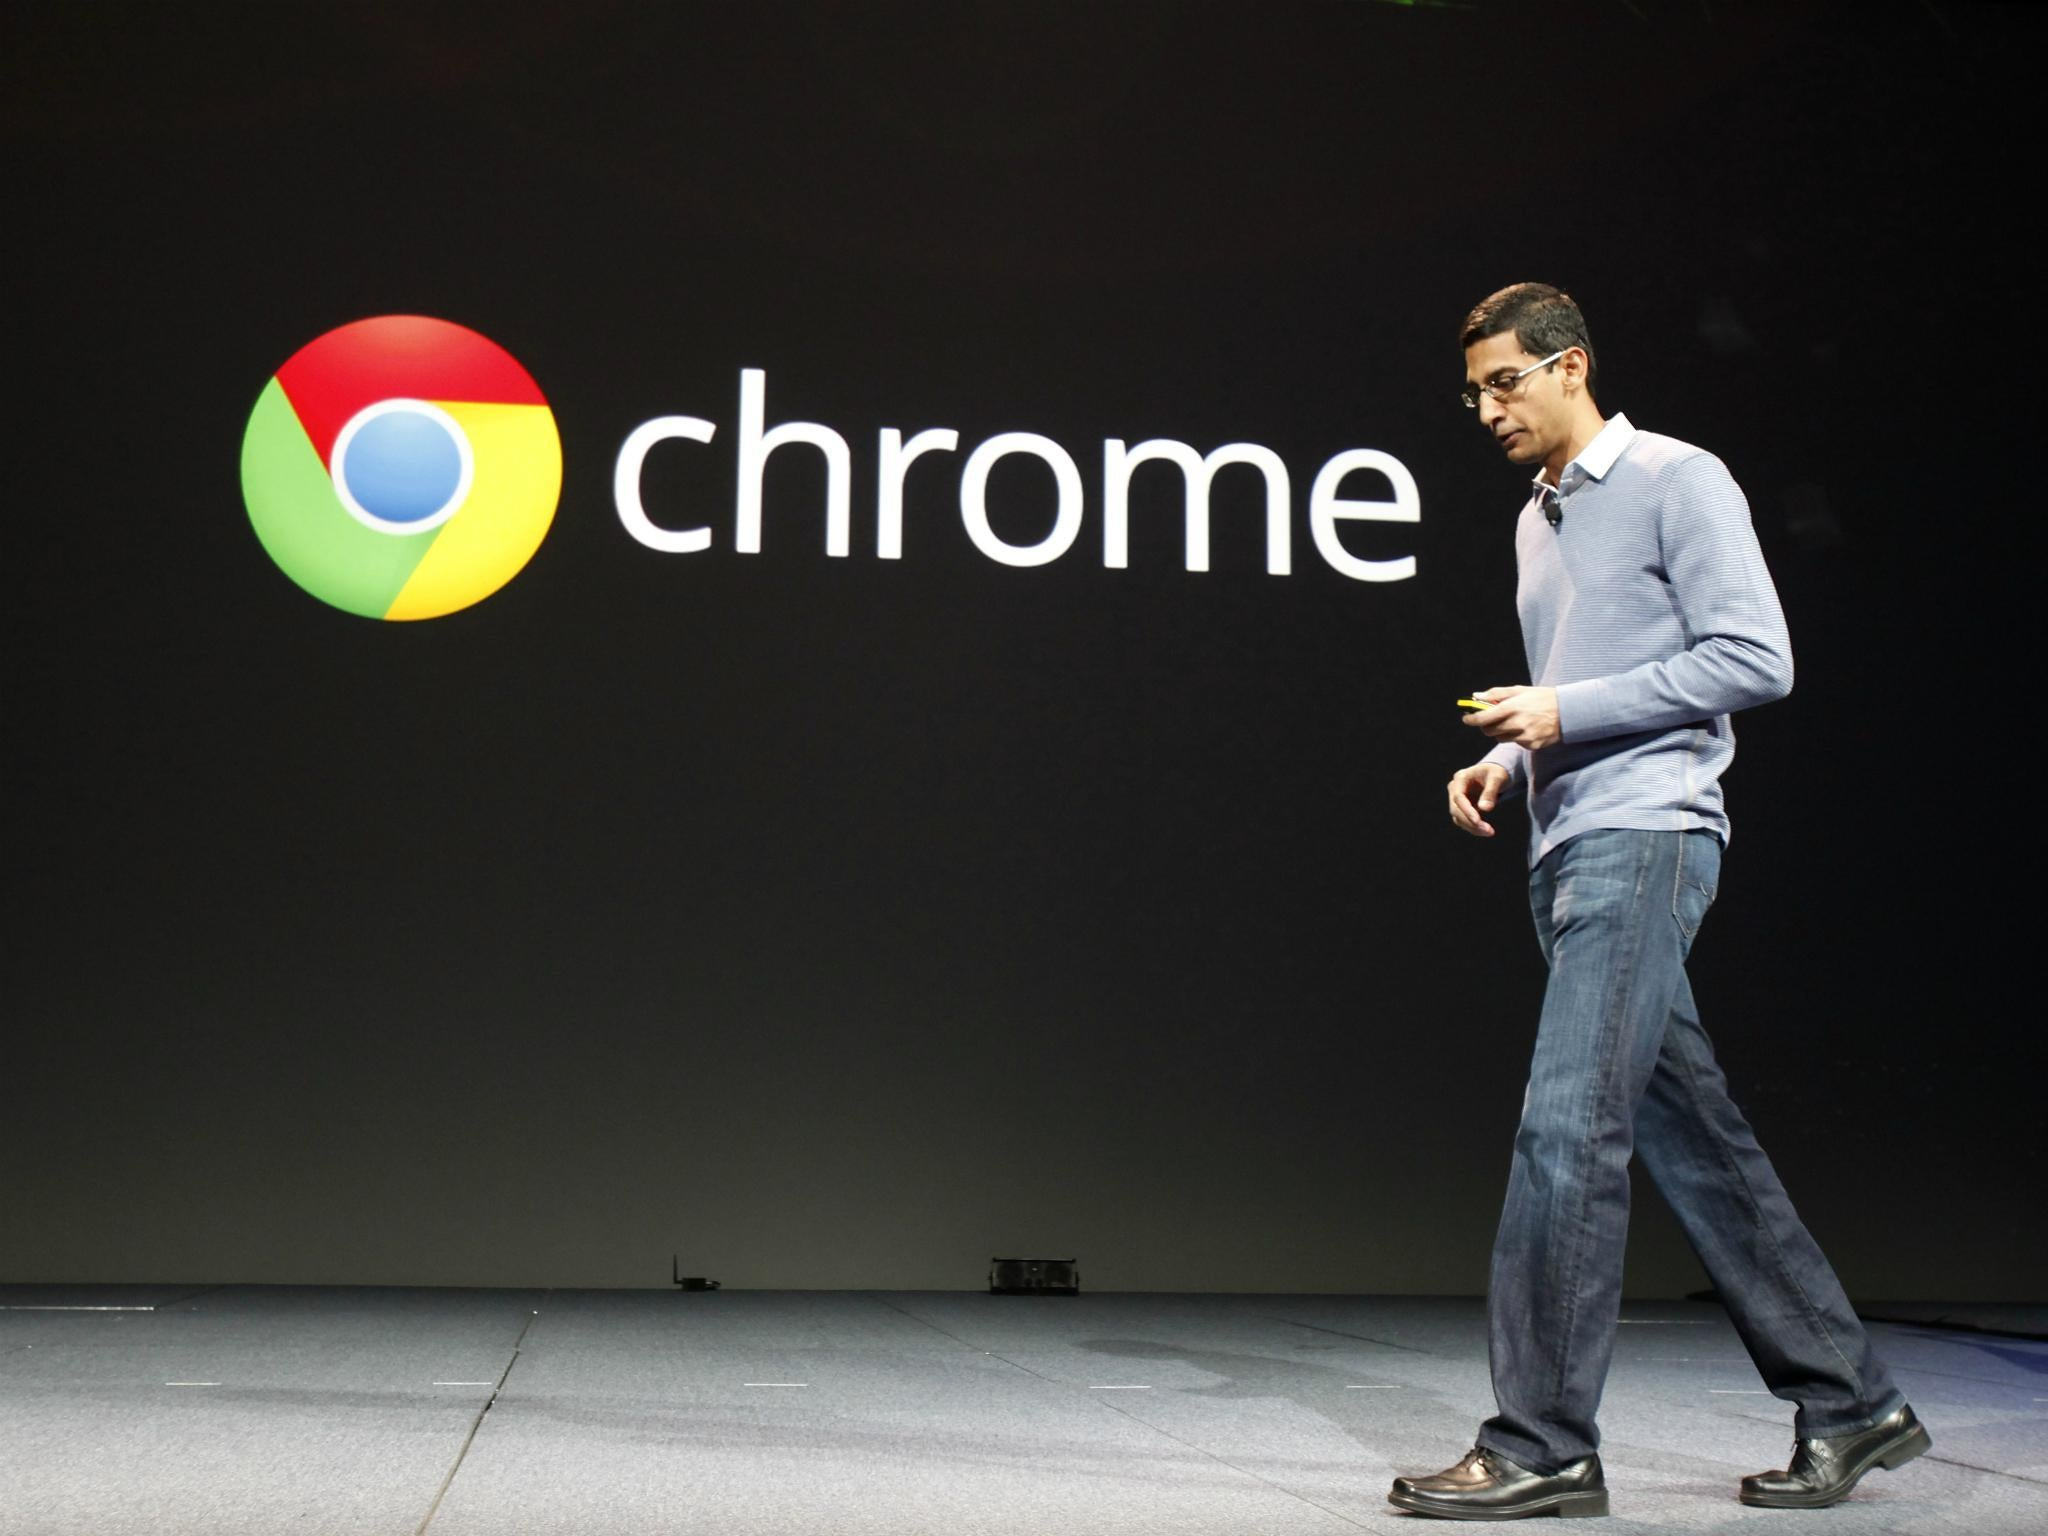 Google Chrome scam tries to scare users into paying for tech support by freezing browser